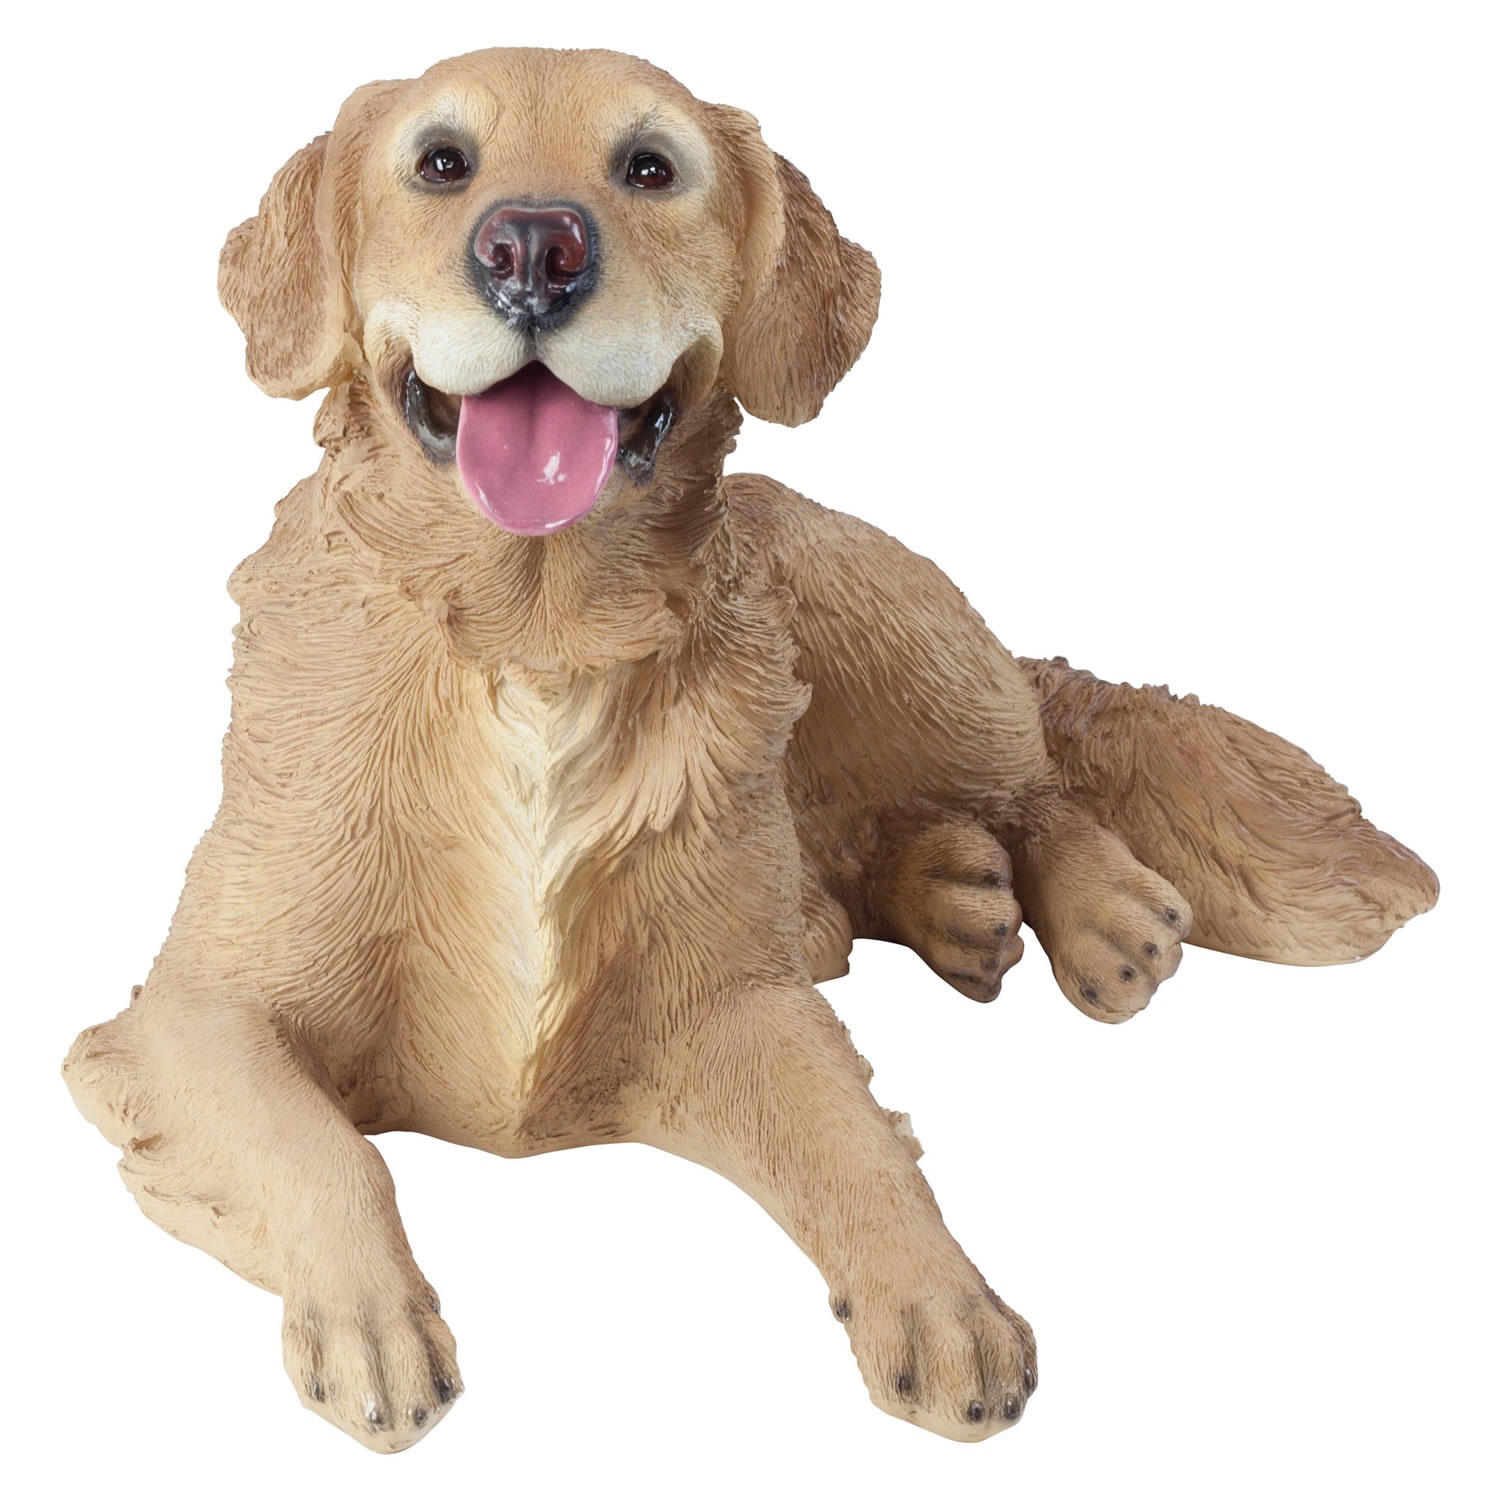 Large Realistic Laying Golden Retriever Dog Statue Garden Ornament   £99.95  | Garden4Less UK Shop